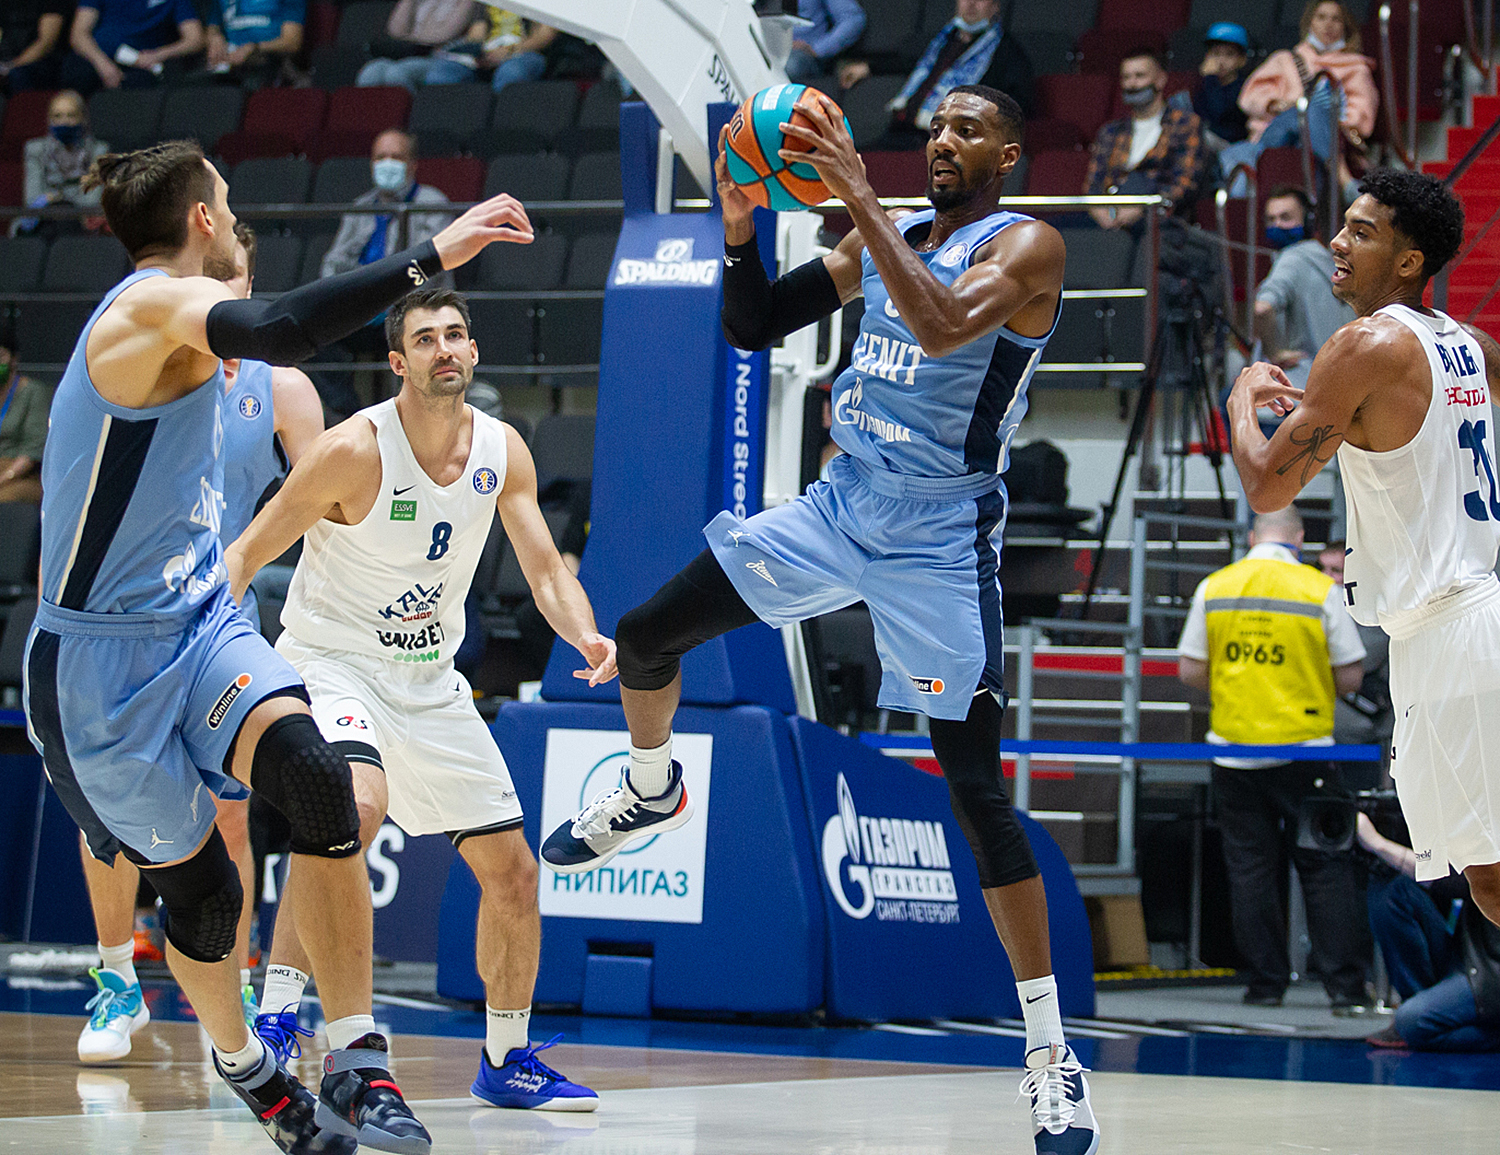 Zenit run away from Kalev in the ending and keep 1st place